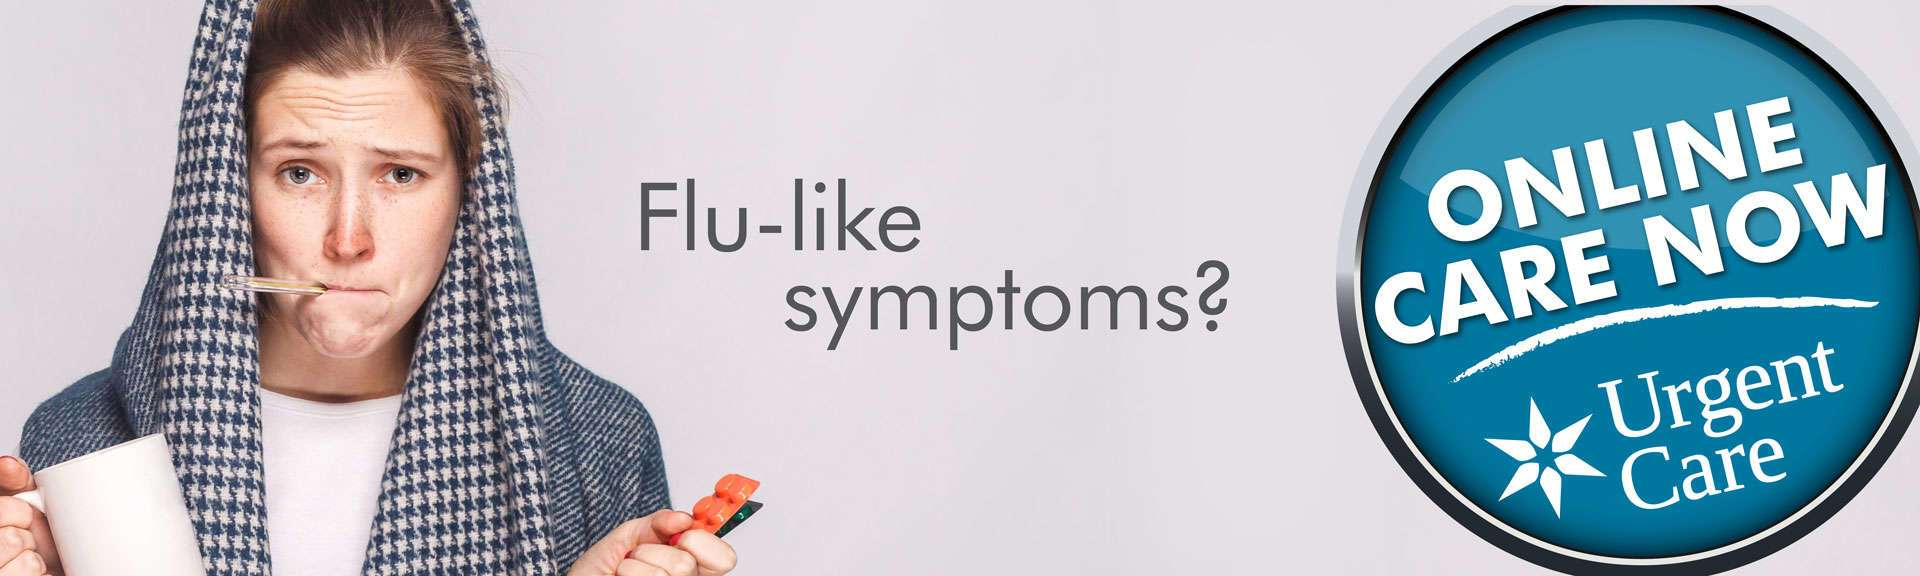 Flu-like Symptoms? Online Care Now - Urgent Care